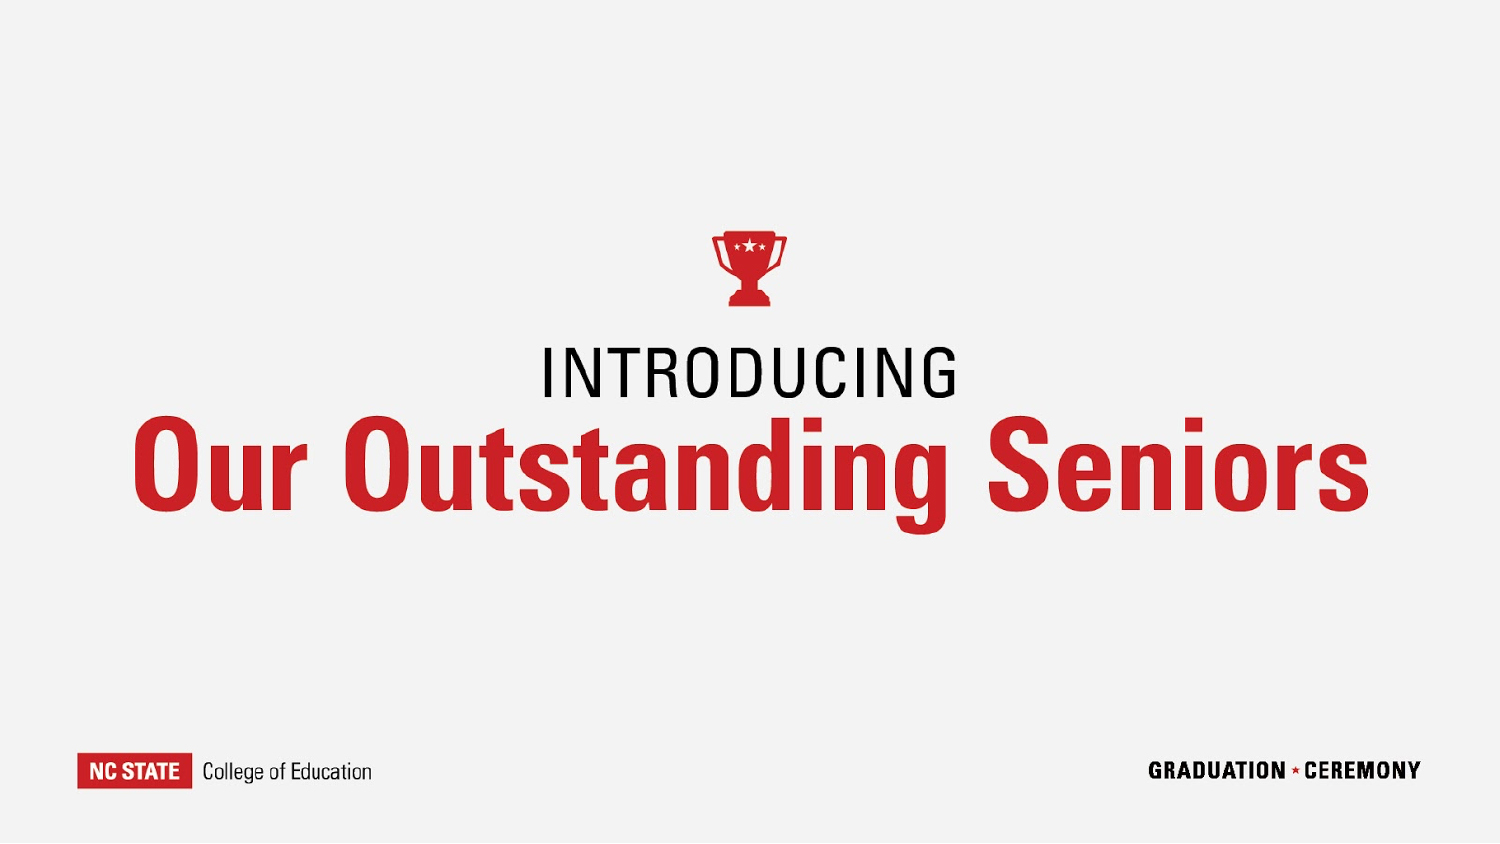 Introducing Our Outstanding Seniors